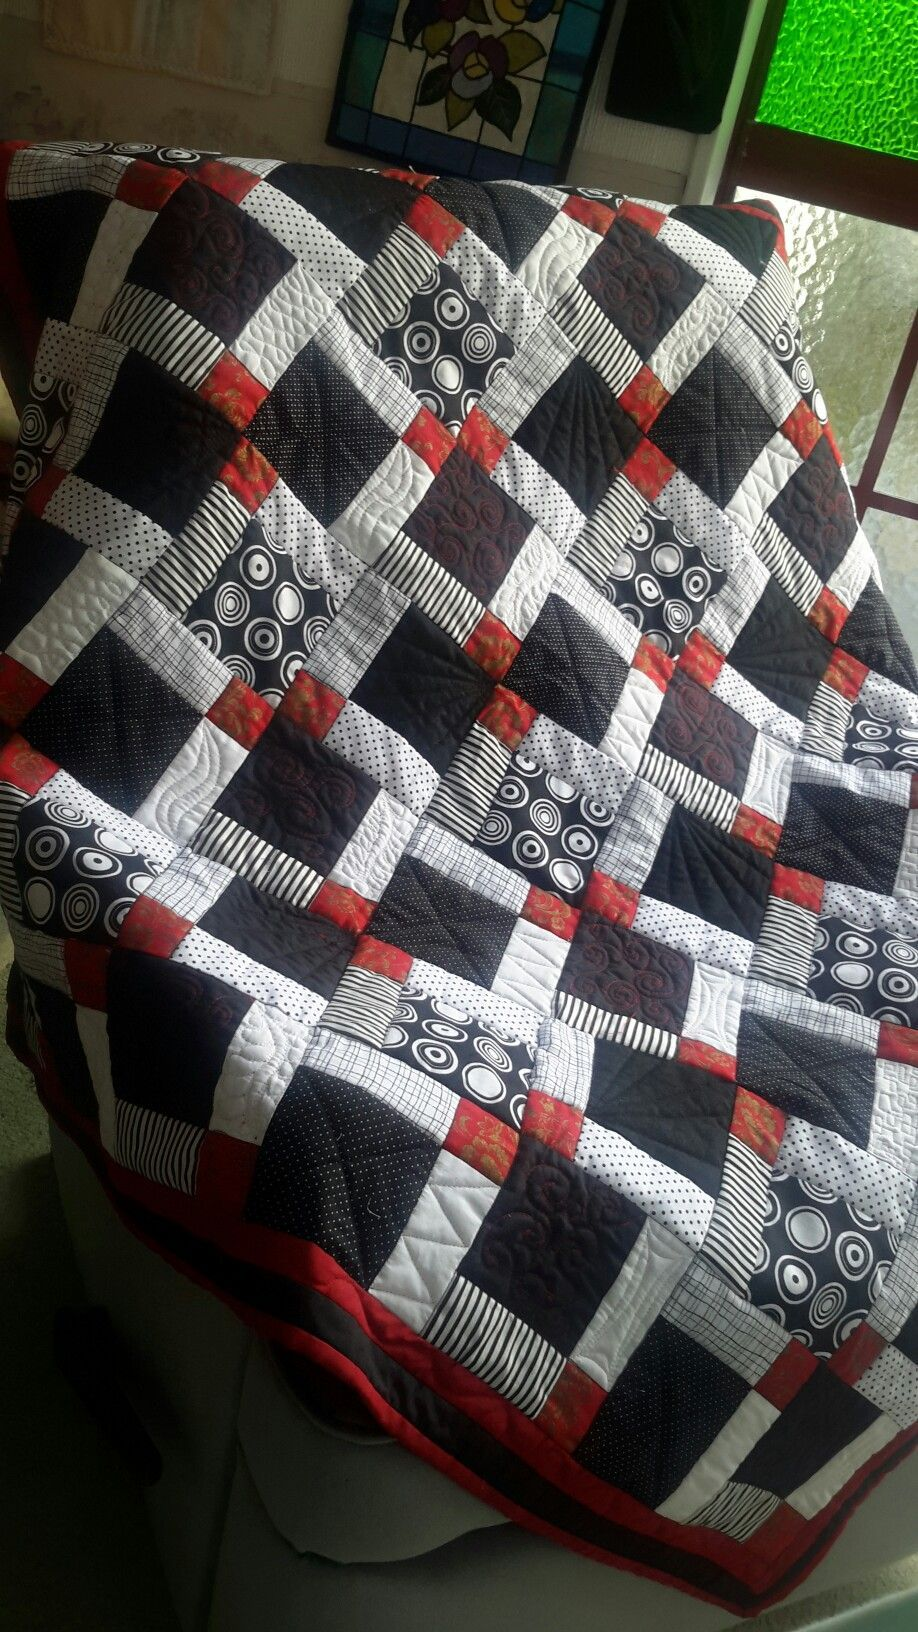 Red And Black Quilt Patterns : black, quilt, patterns, Image, Result, Black, White, Quilt, Patterns, Patchwork, Patterns,, Quilts,, Quilts